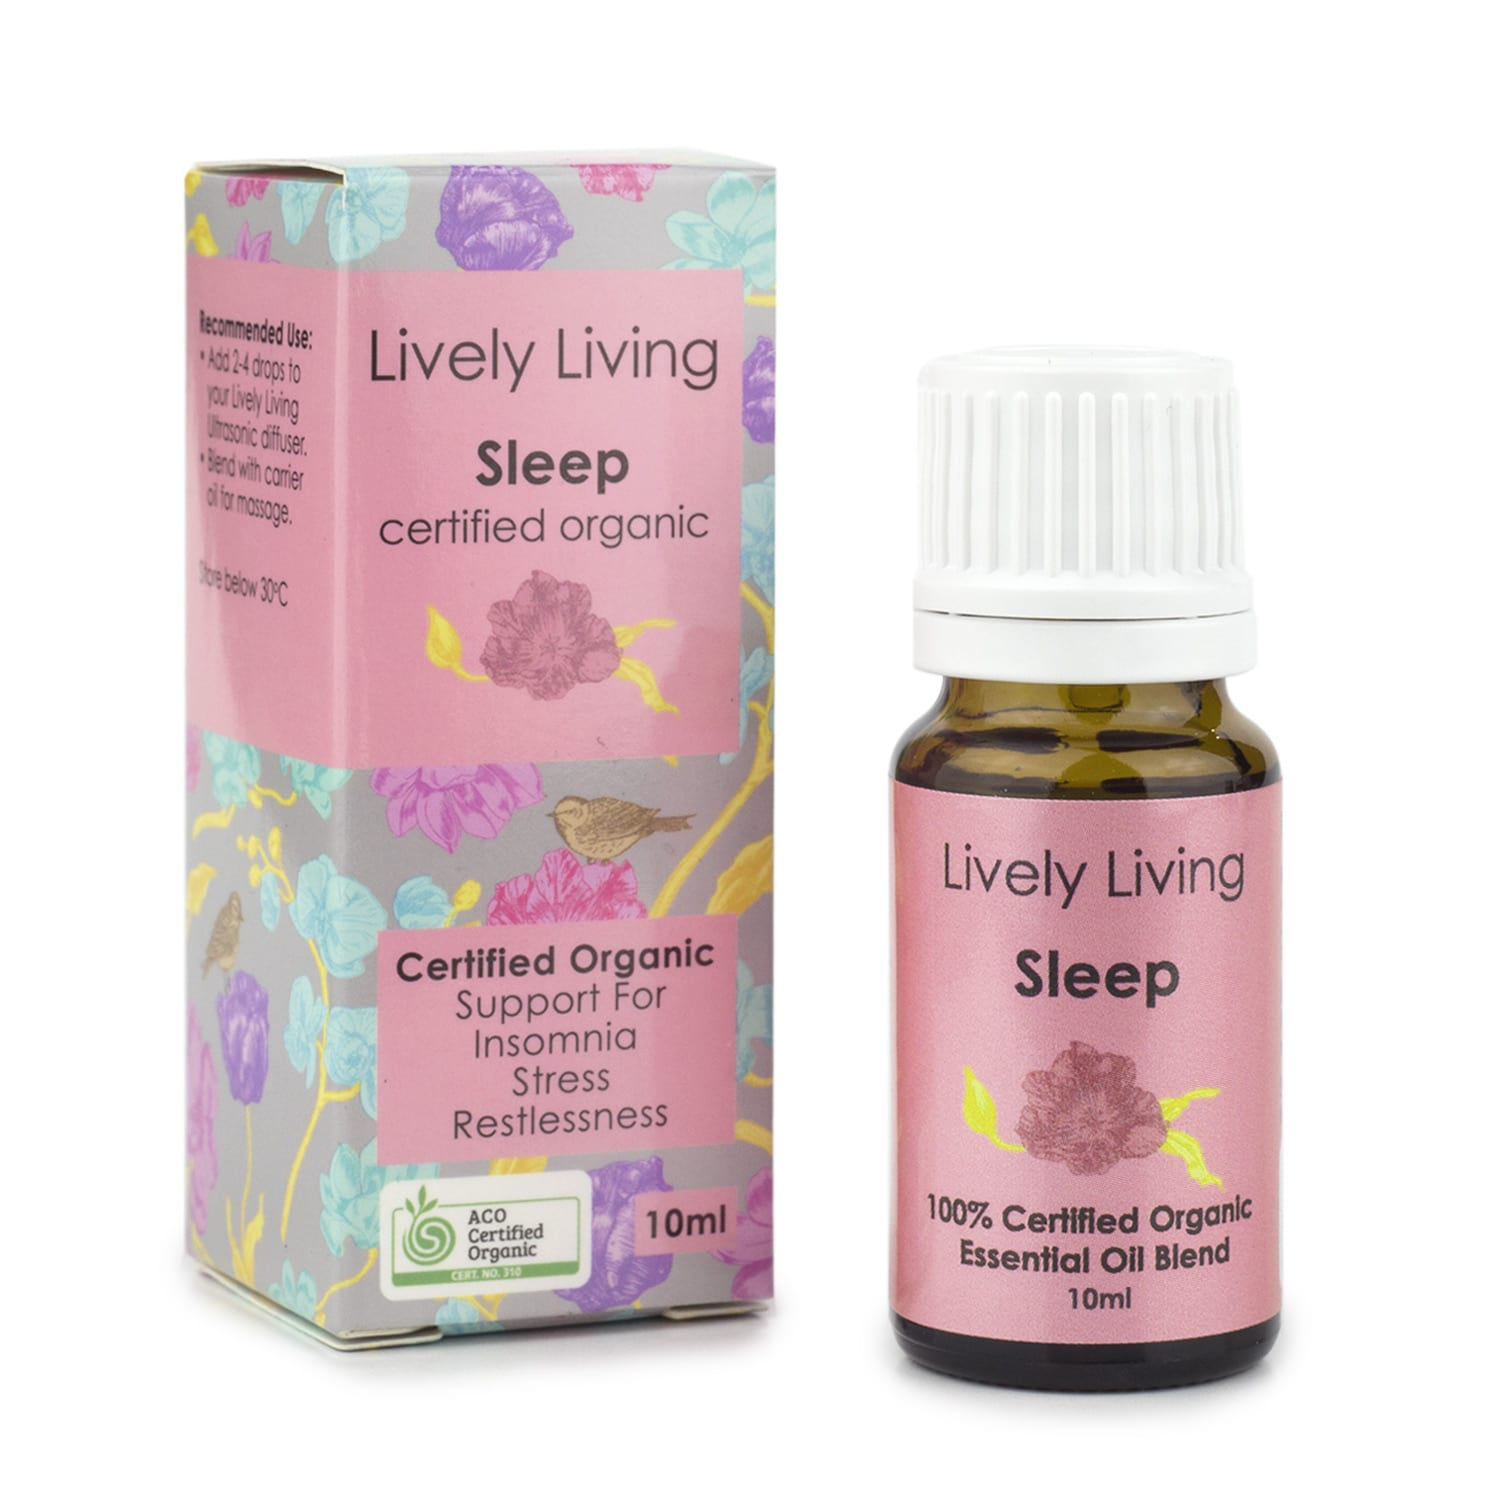 Lively Living Sleep